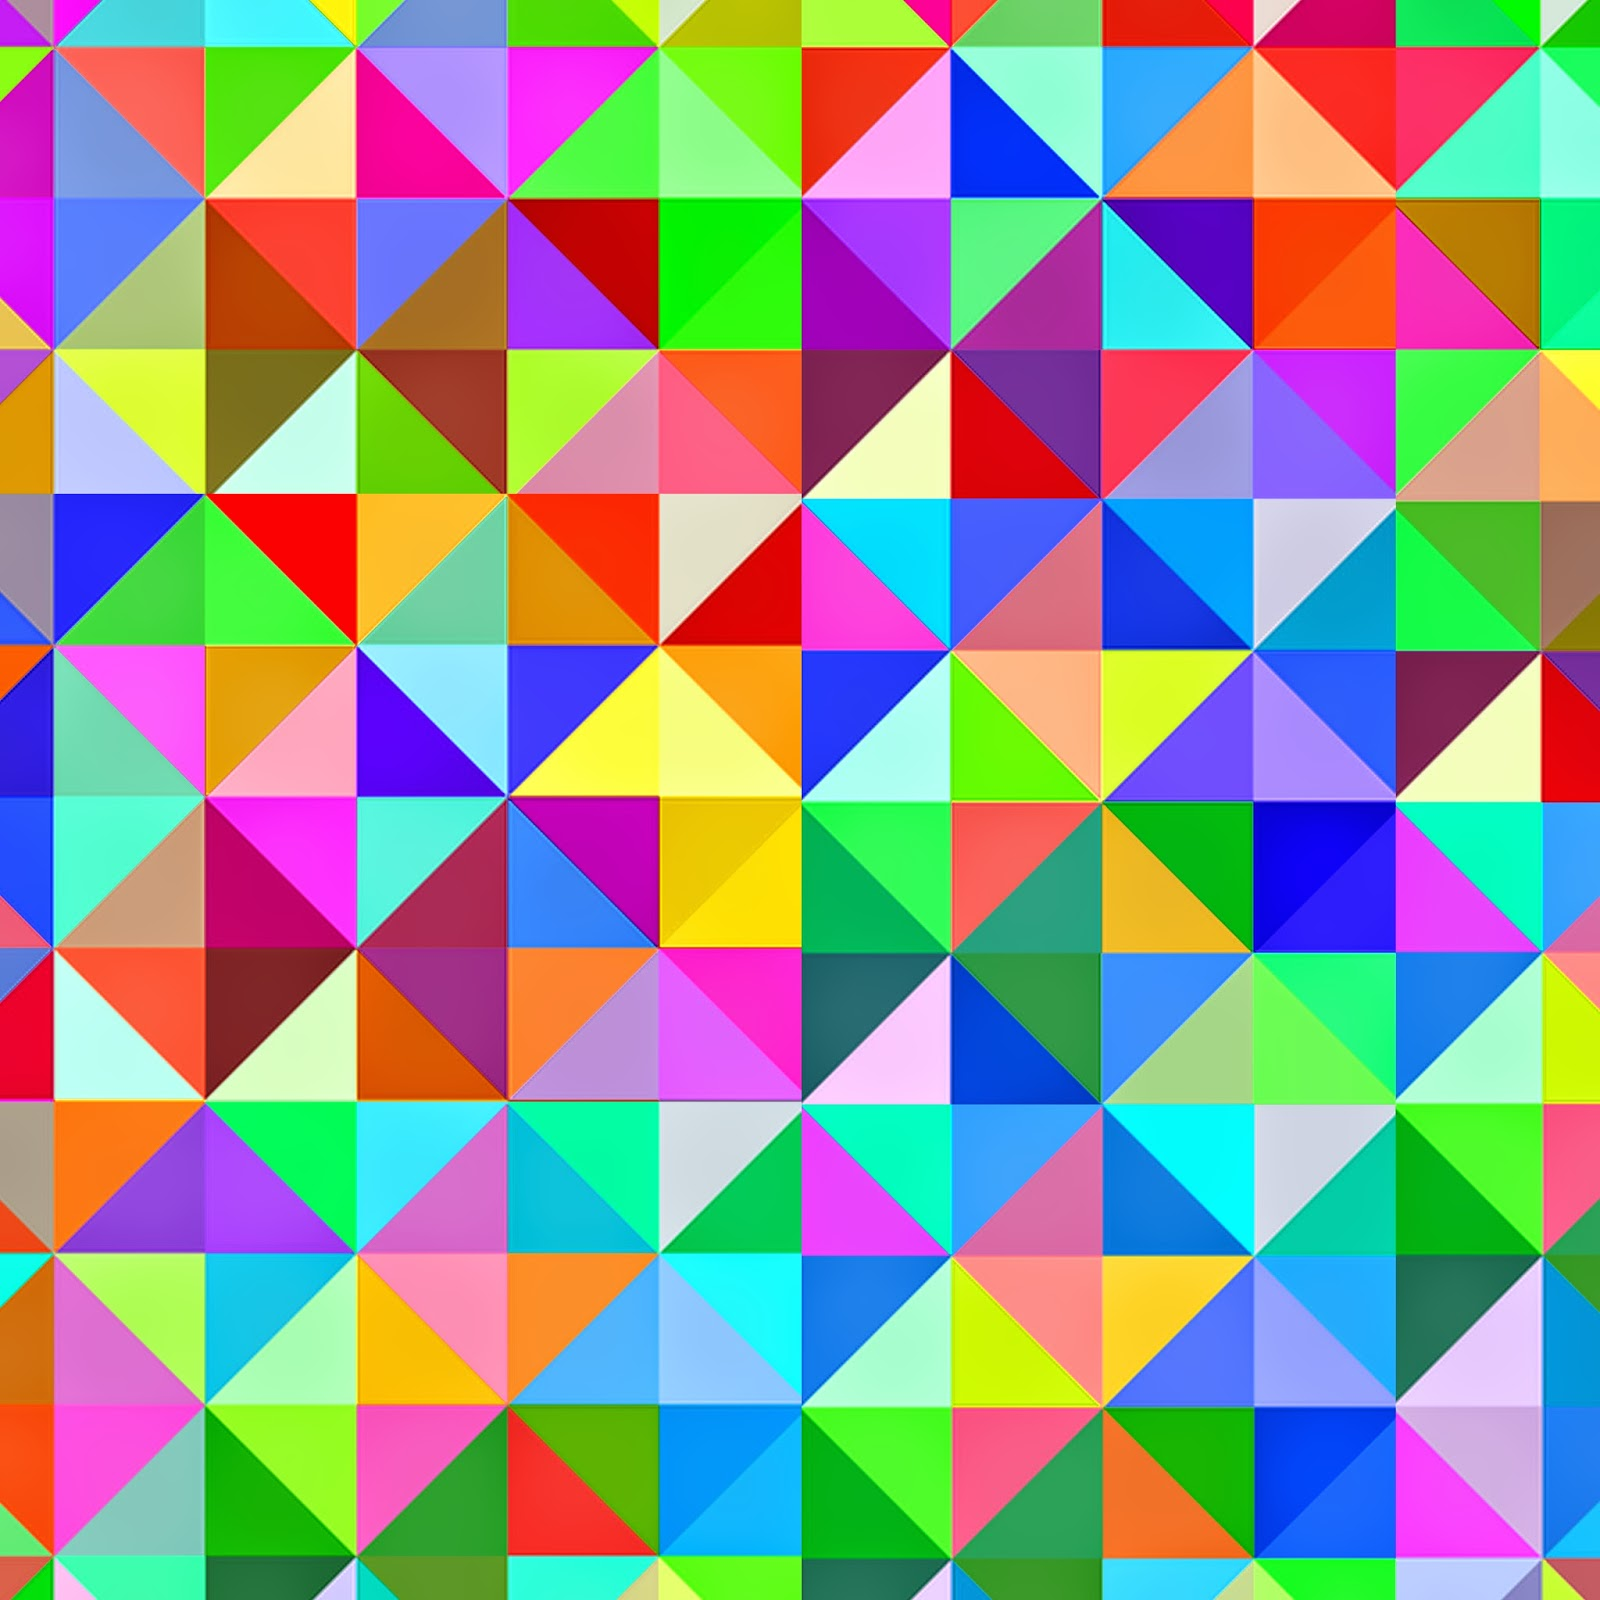 http://www.doodlecraftblog.com/2014/04/giant-geometric-triangle-background.html